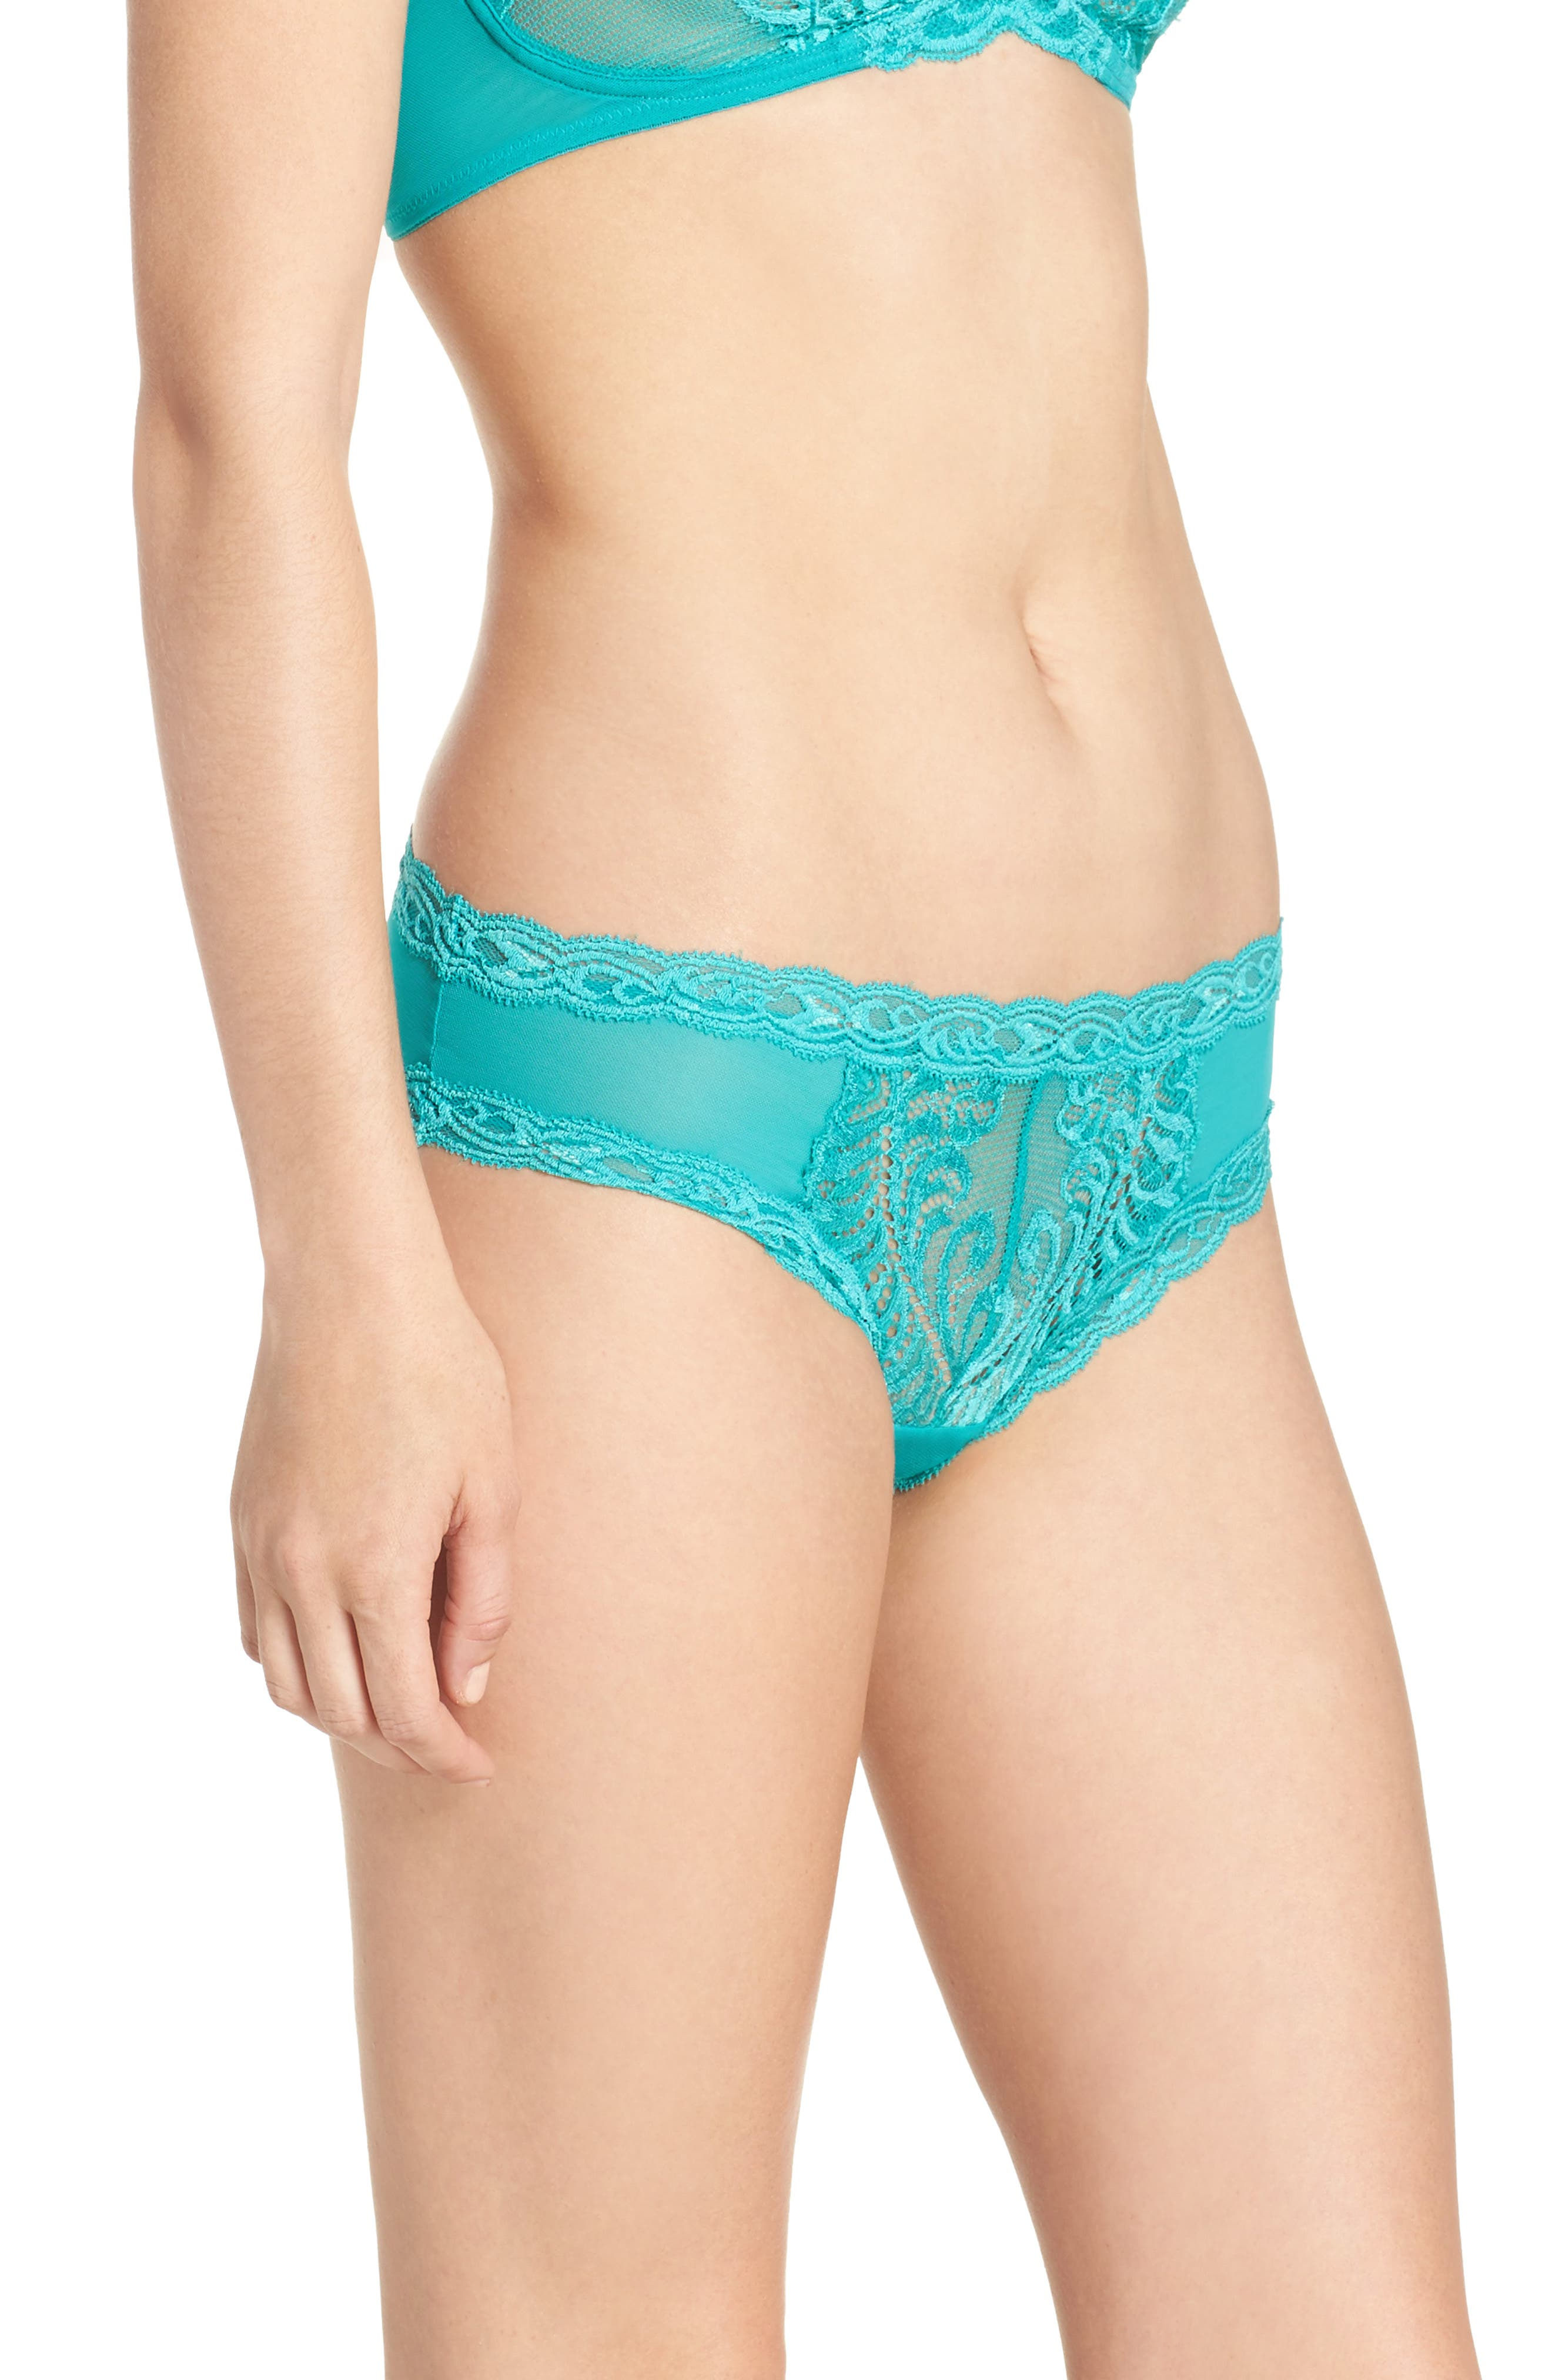 Feathers Hipster Briefs,                             Alternate thumbnail 372, color,